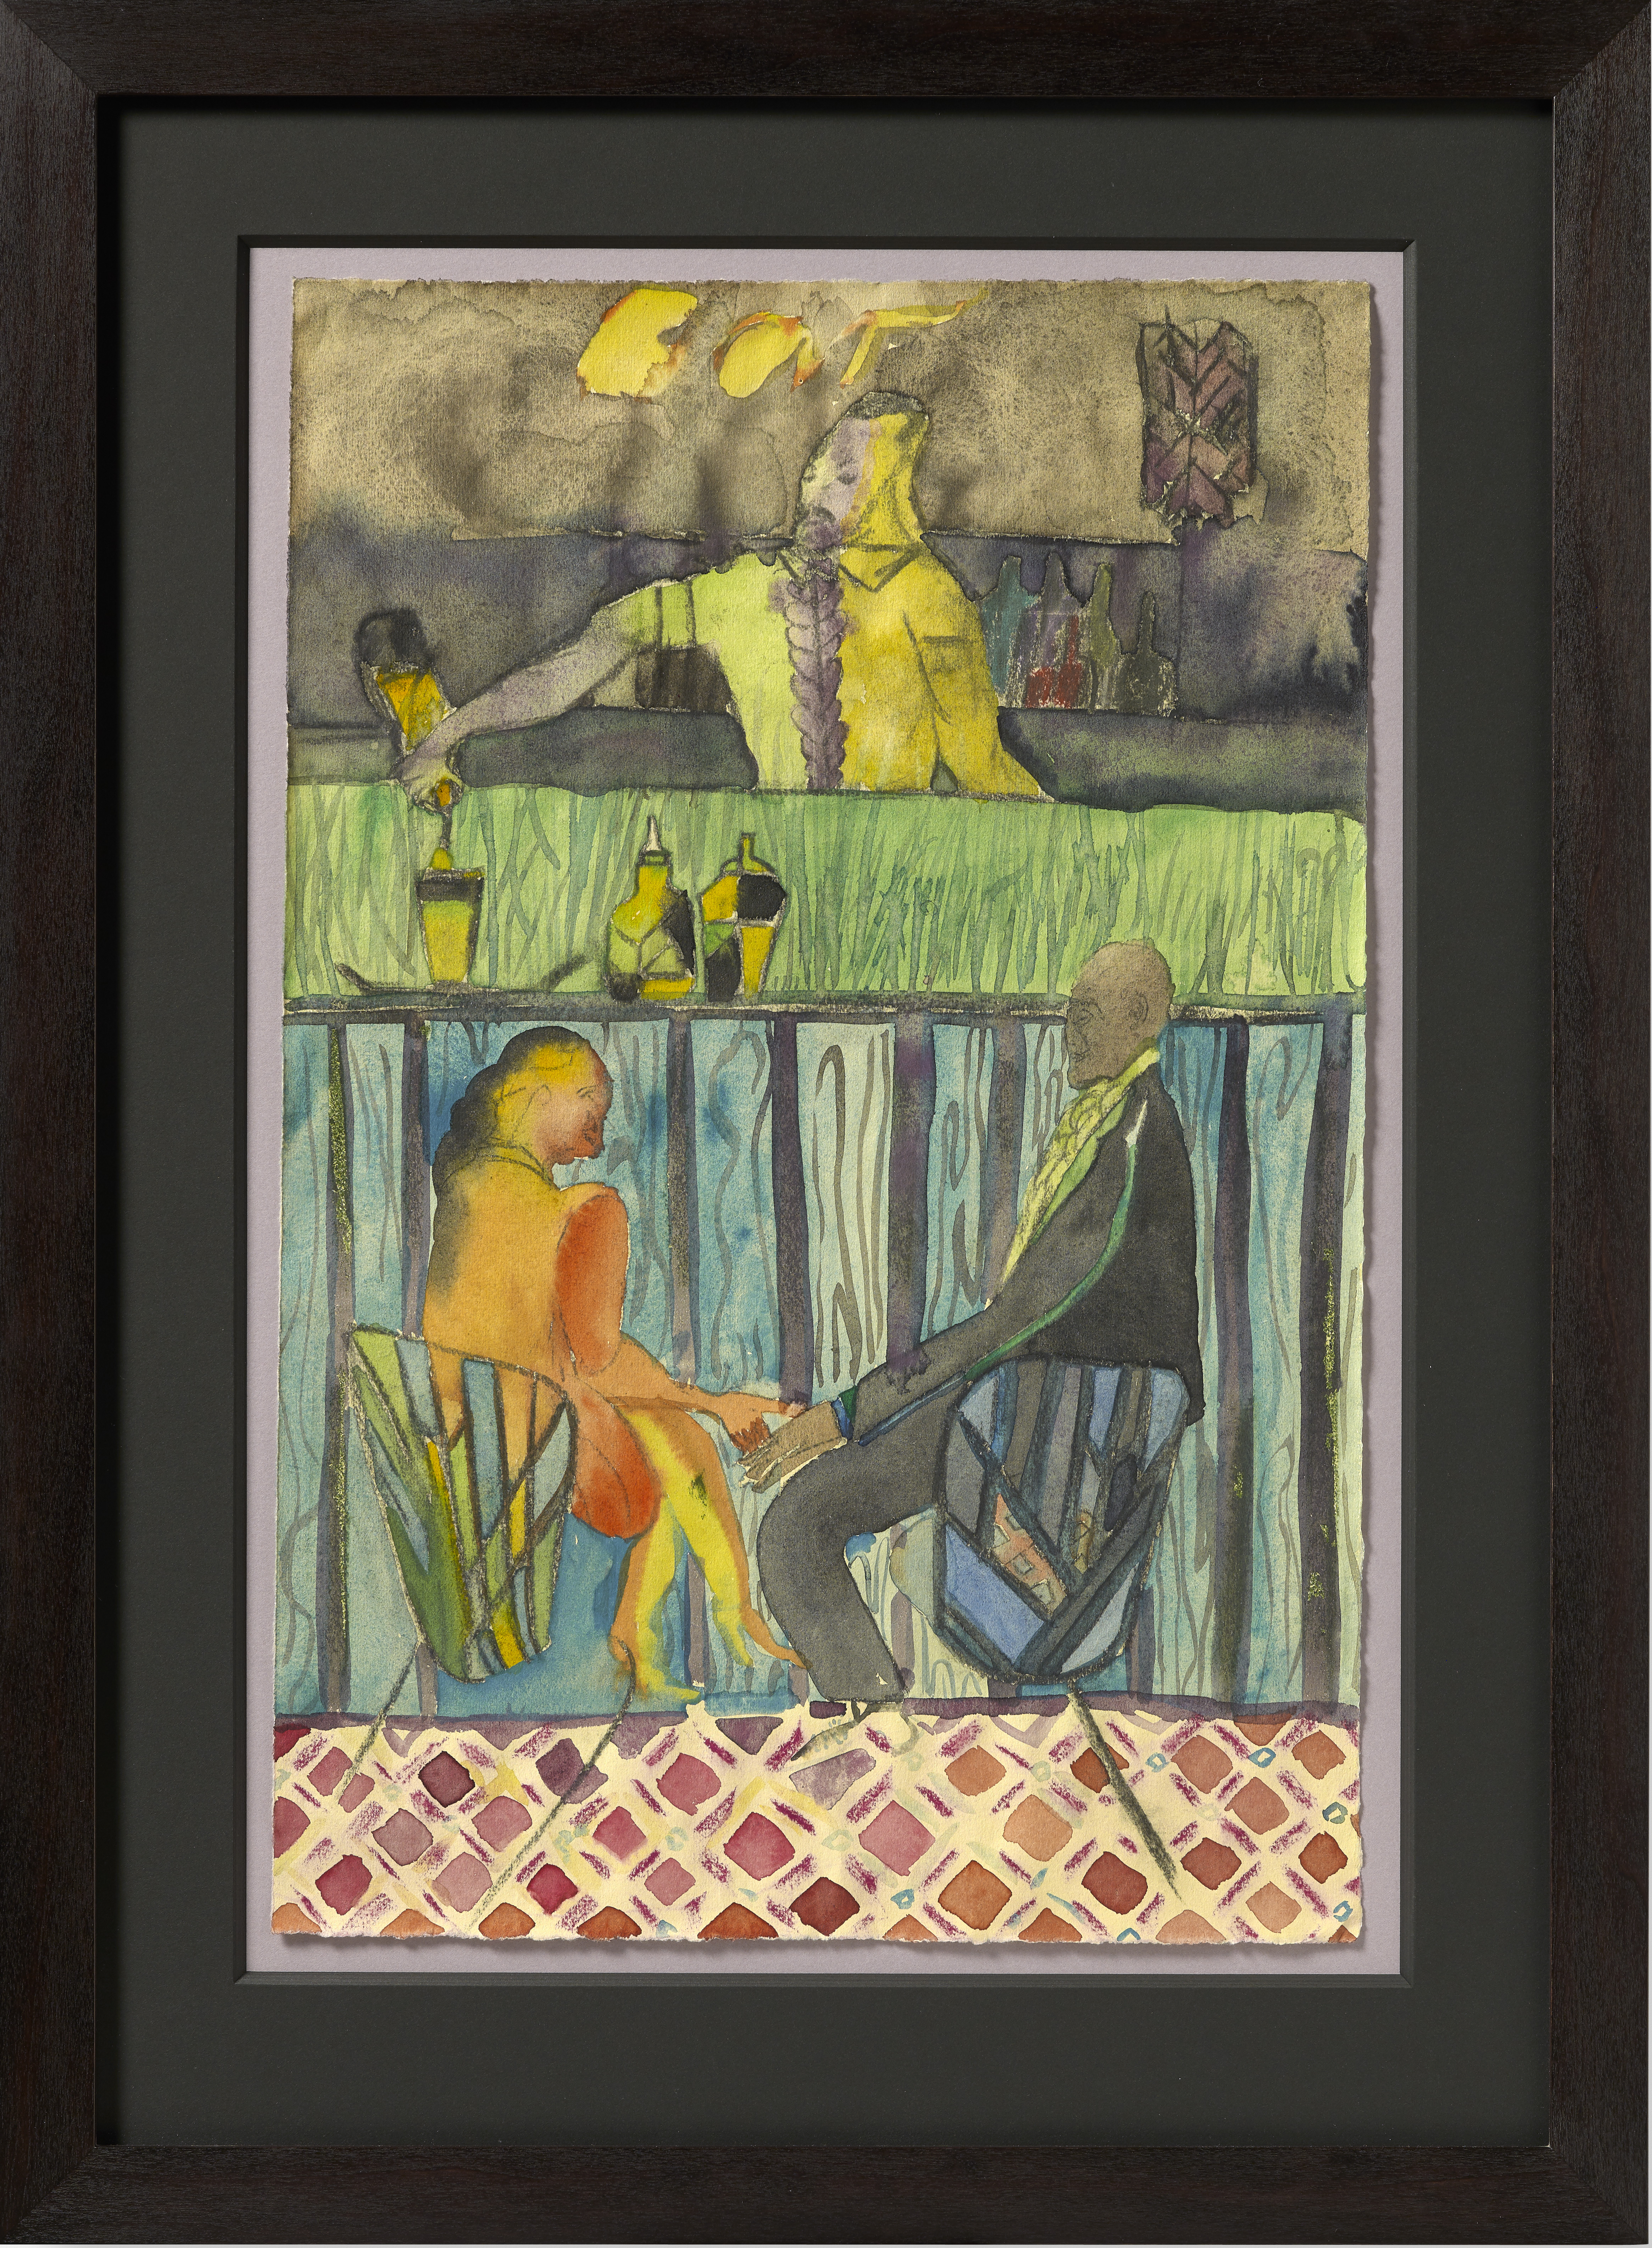 Watercolor art galleries in houston - Watercolor And Charcoal On Paper 19 1 8 X 12 5 8 In 48 6 X 31 9 Cm Chris Ofili Courtesy David Zwirner New York London